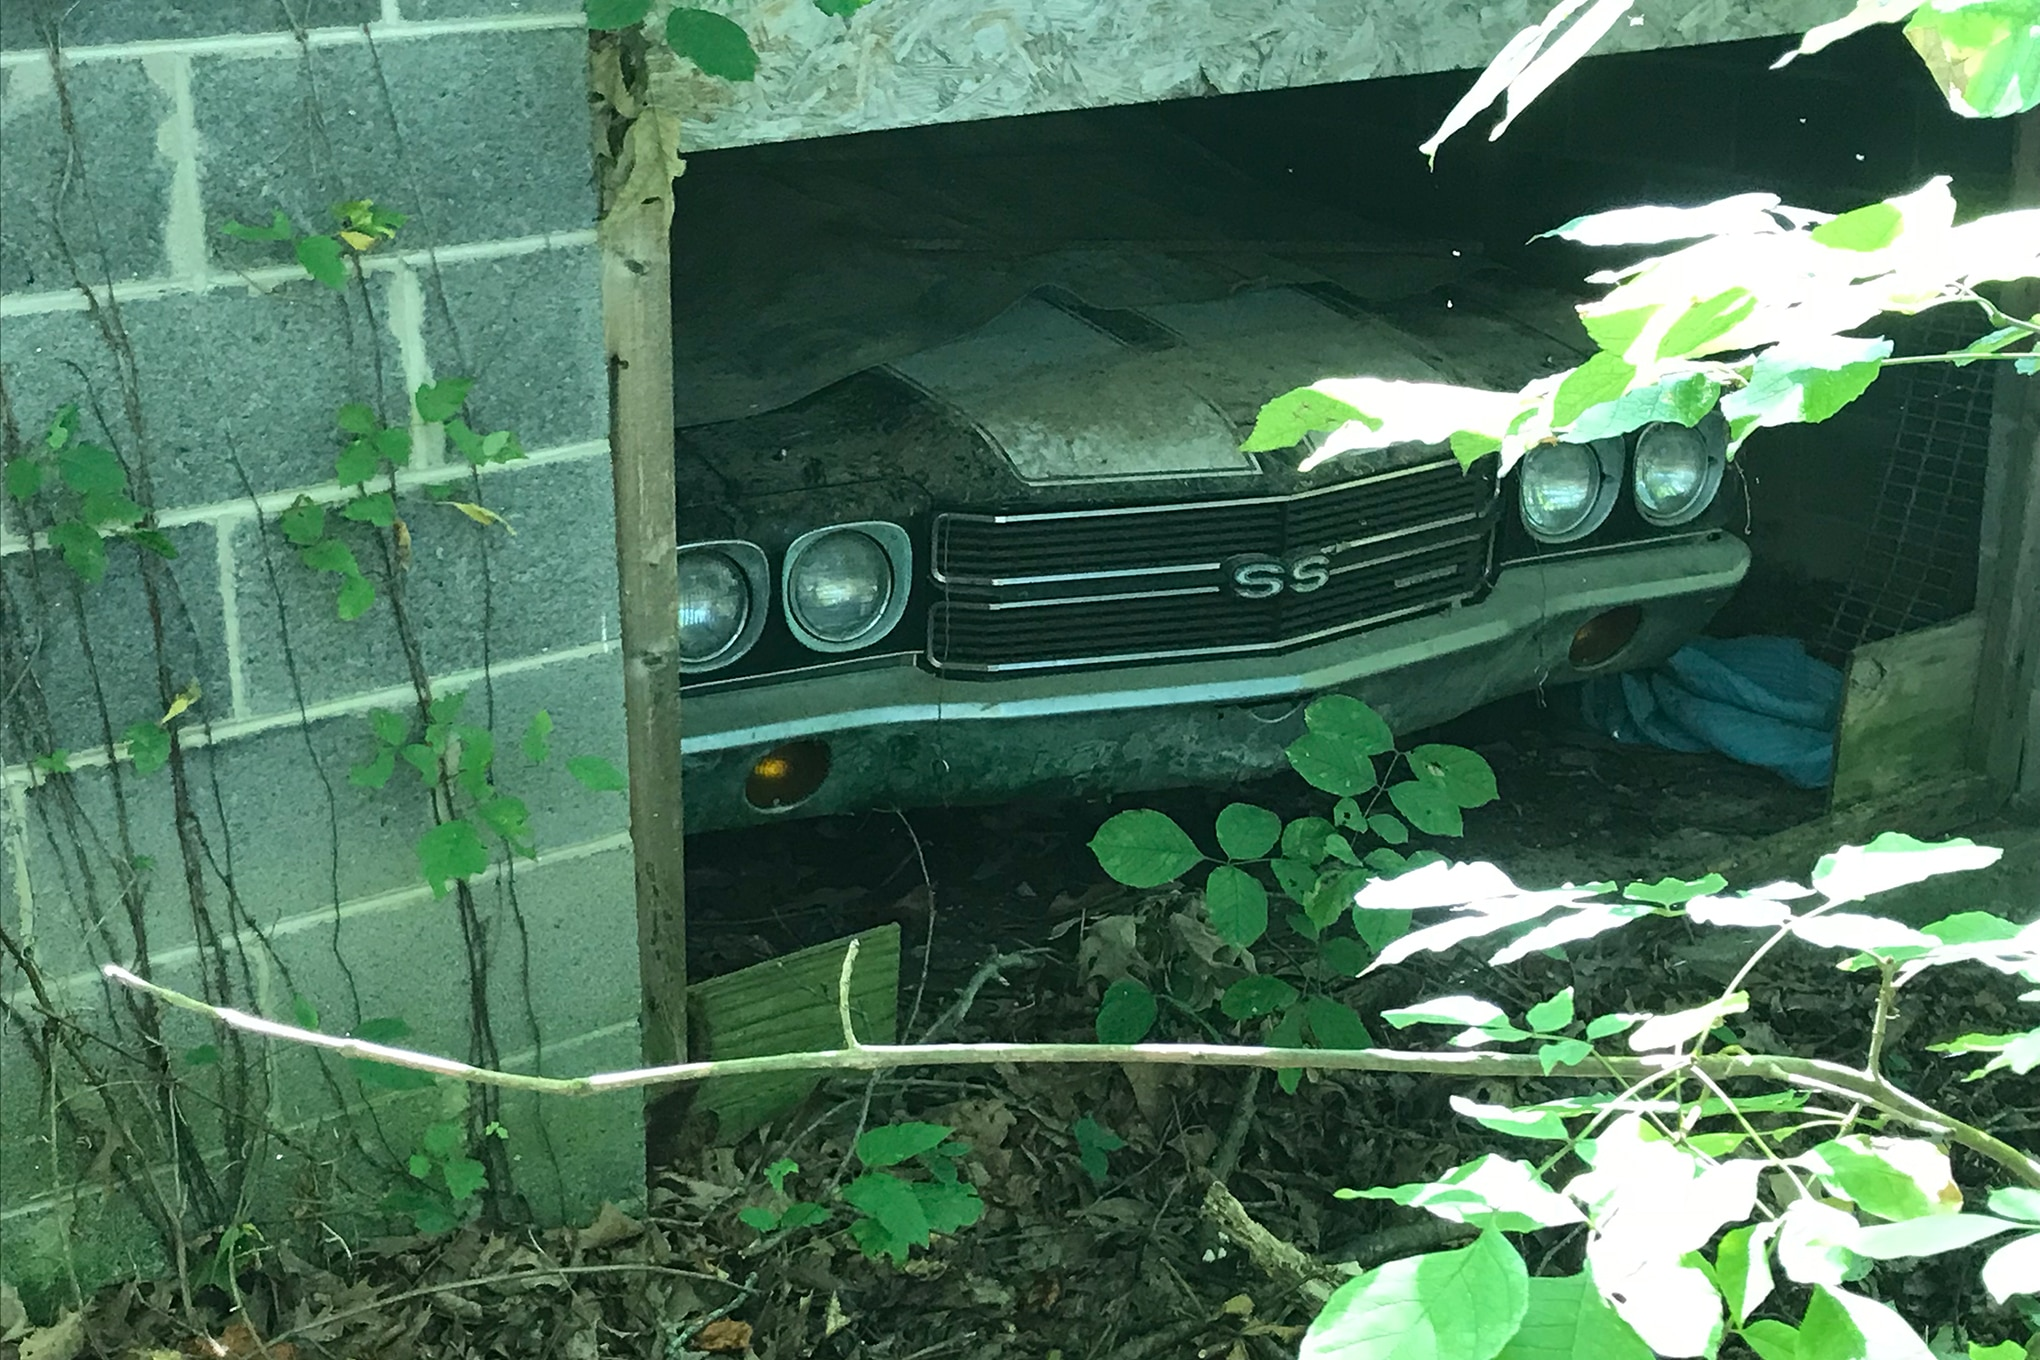 1970 El Camino Led Tail Lights 60 000 Mile 1970 Chevrolet El Camino Ls6 Found Behind Trees Hot